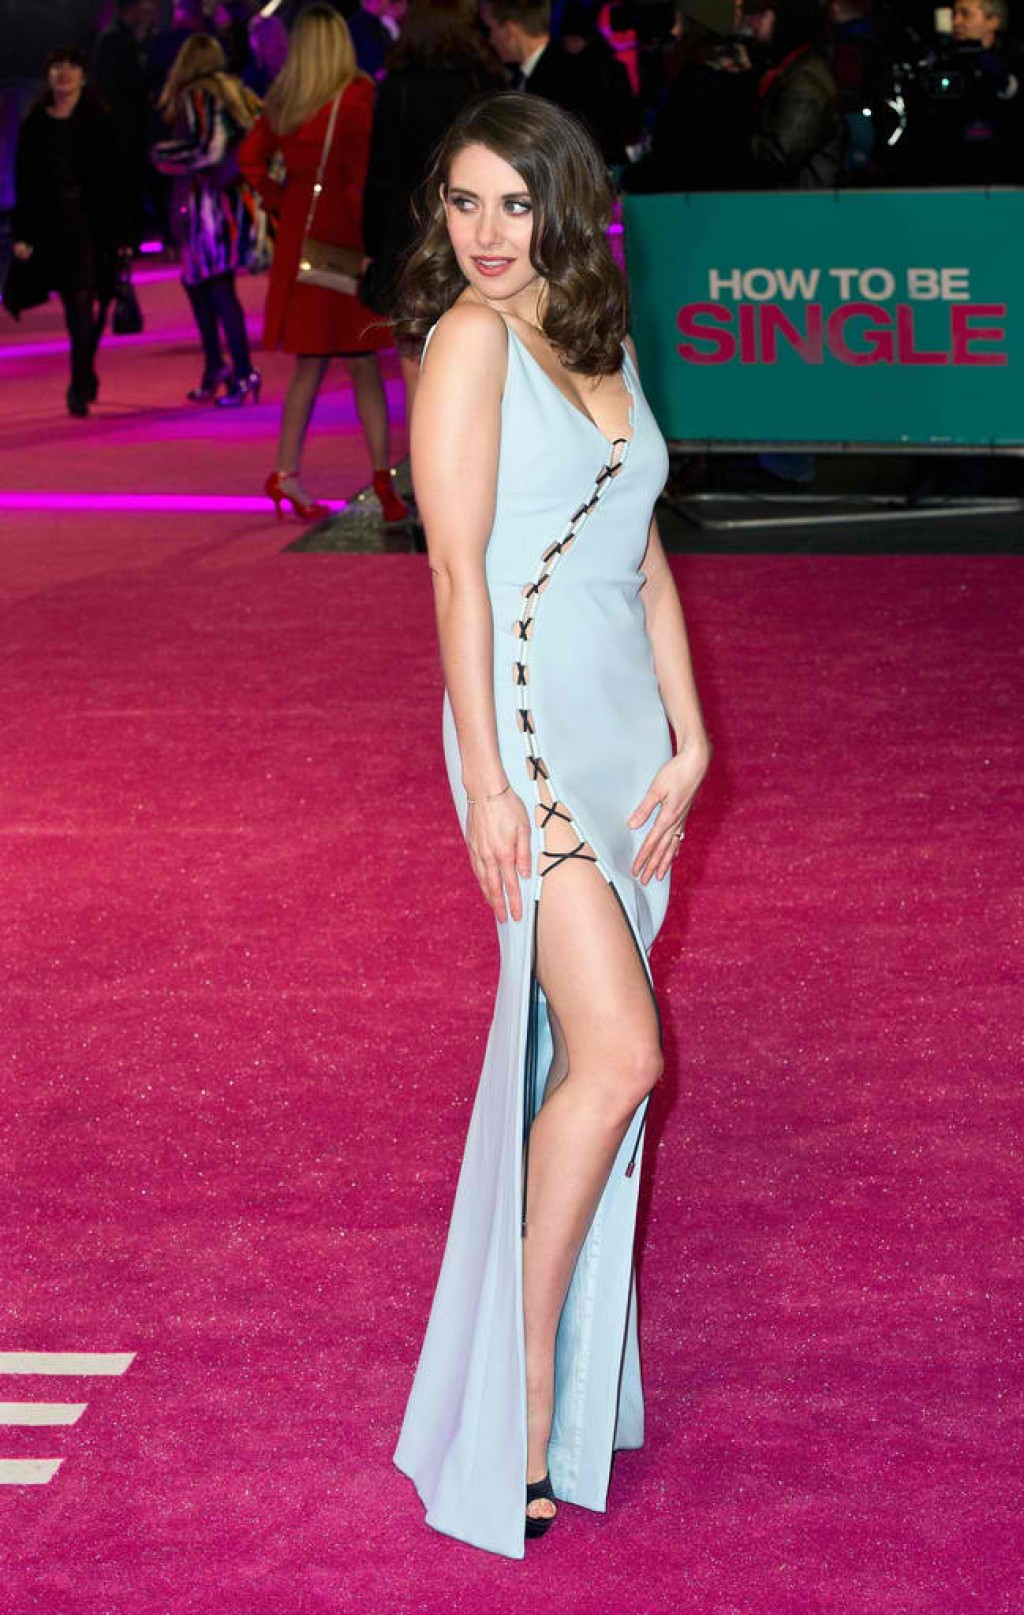 How-To-Be-Single-London-Premiere-Alison-Brie-1024x1615